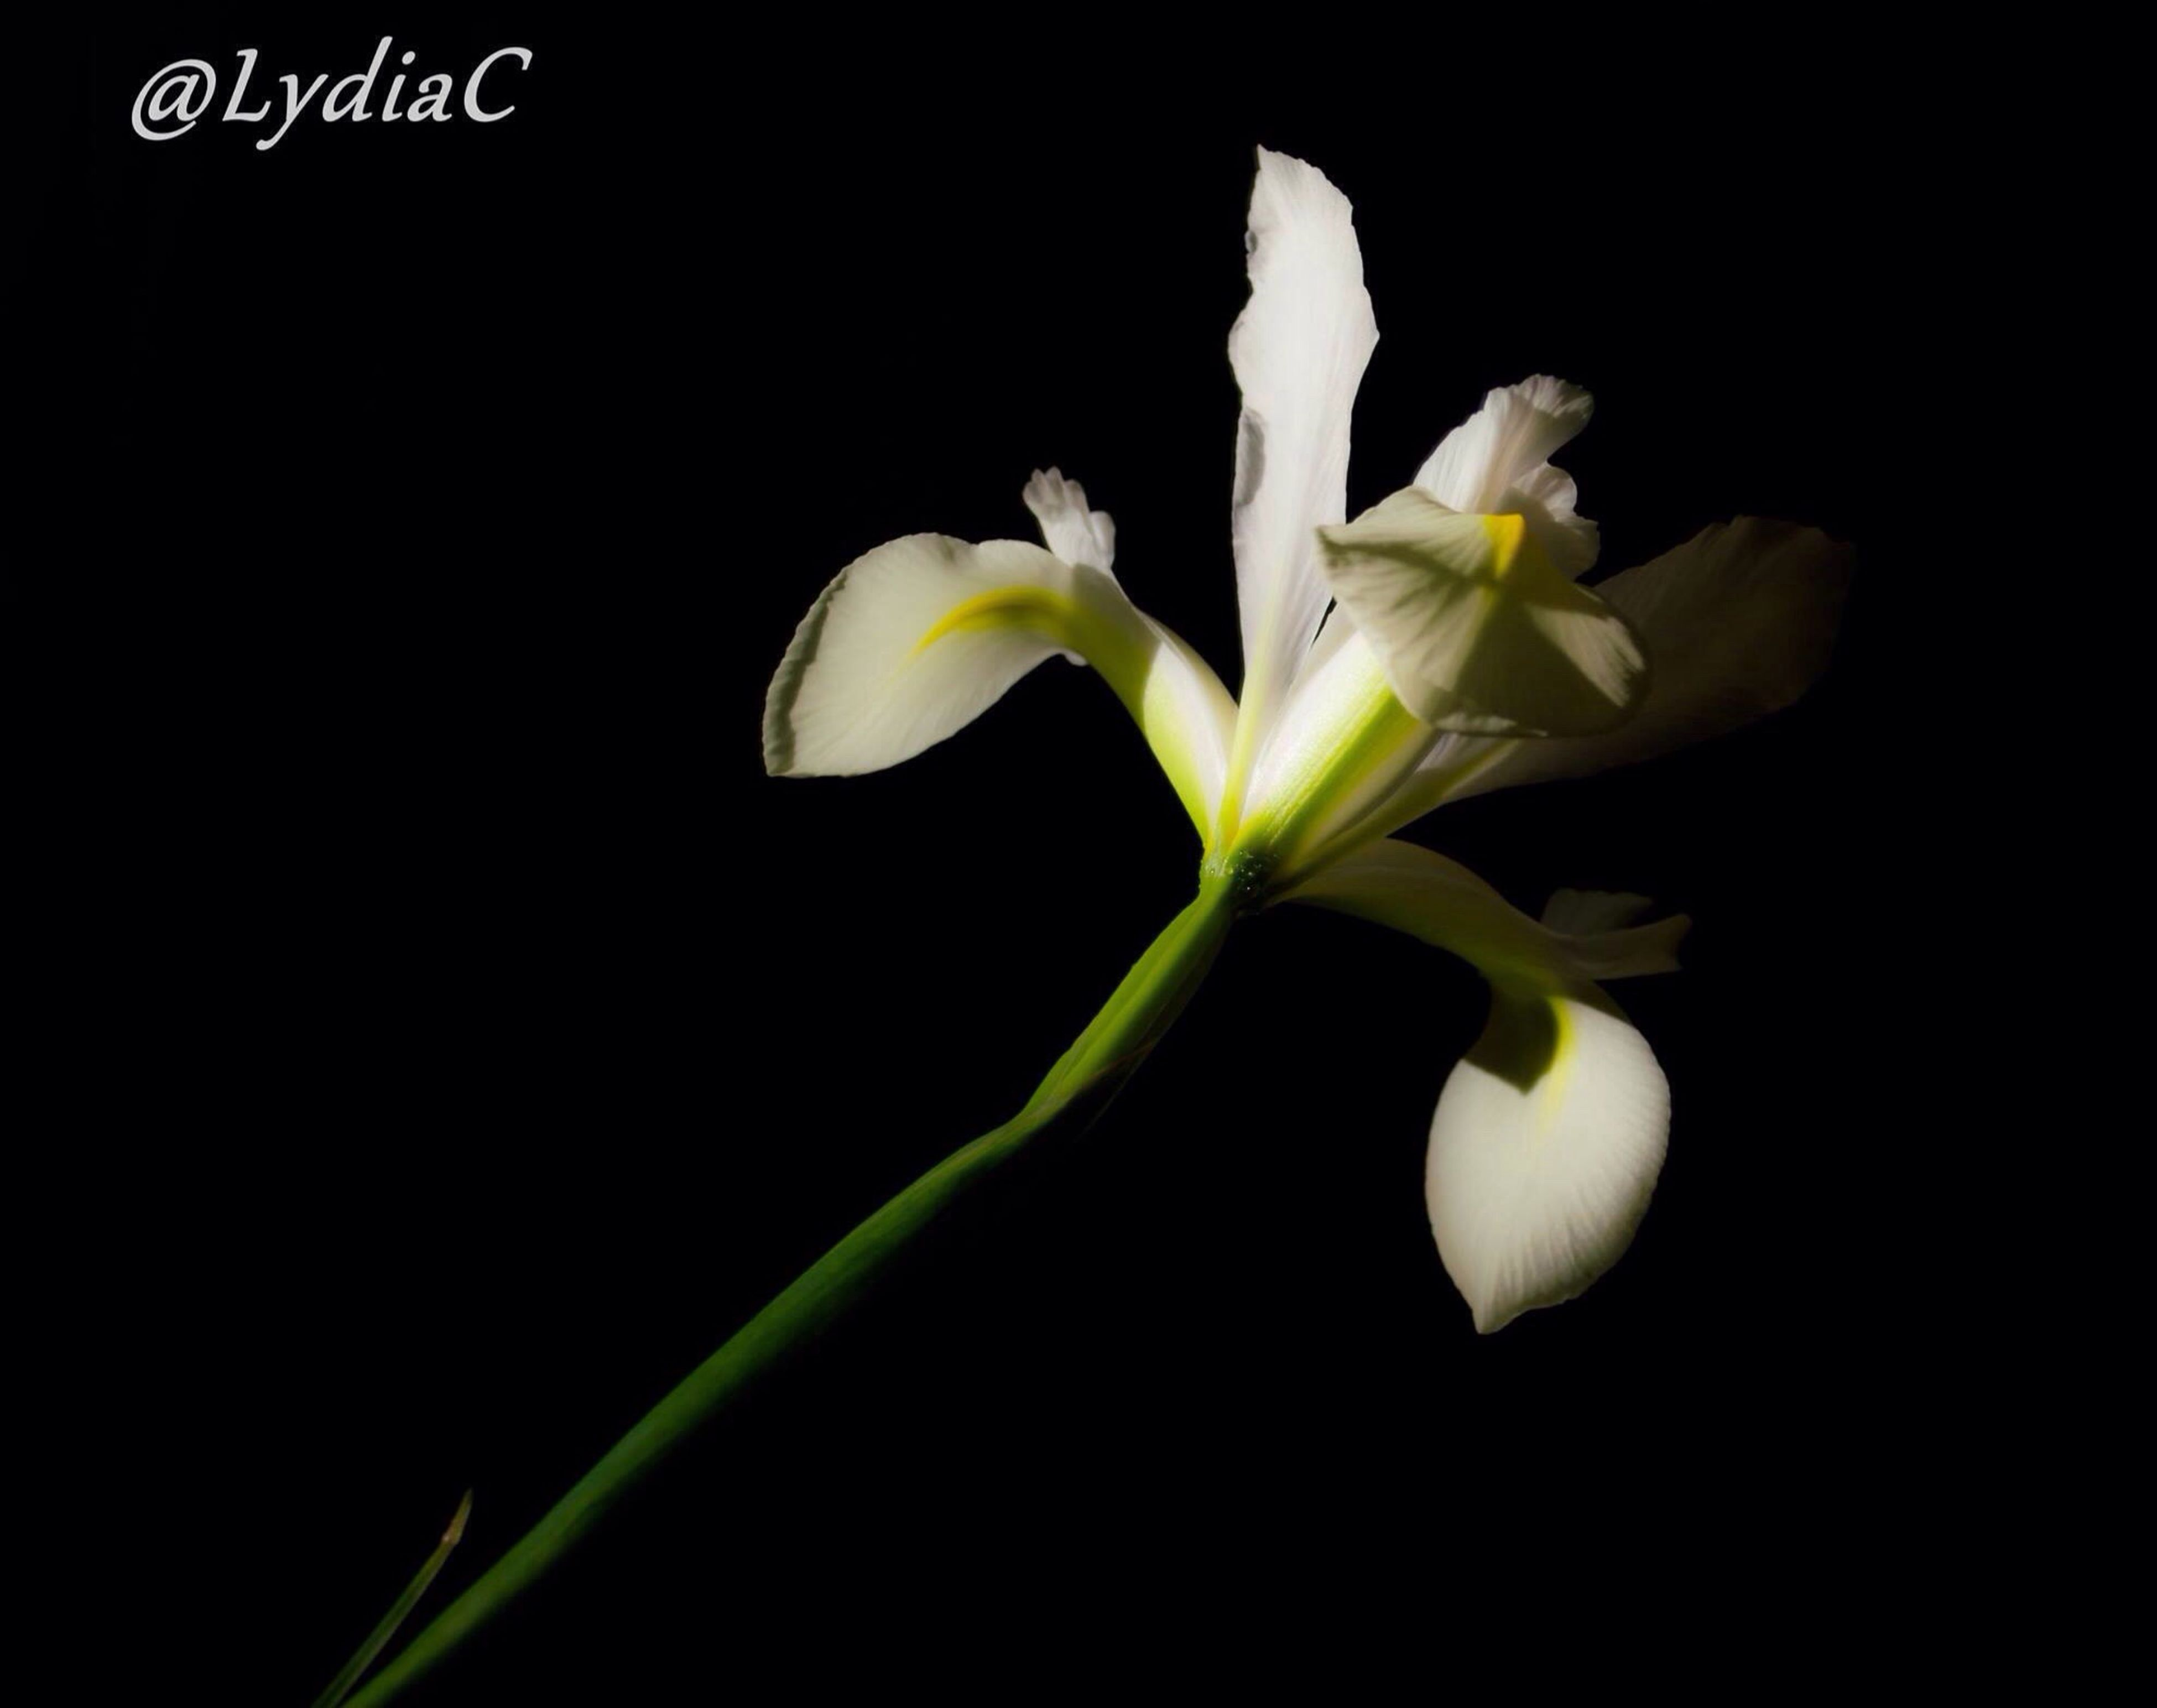 flower, freshness, black background, studio shot, fragility, flower head, petal, growth, white color, beauty in nature, close-up, nature, stem, copy space, plant, bud, night, white, blooming, green color